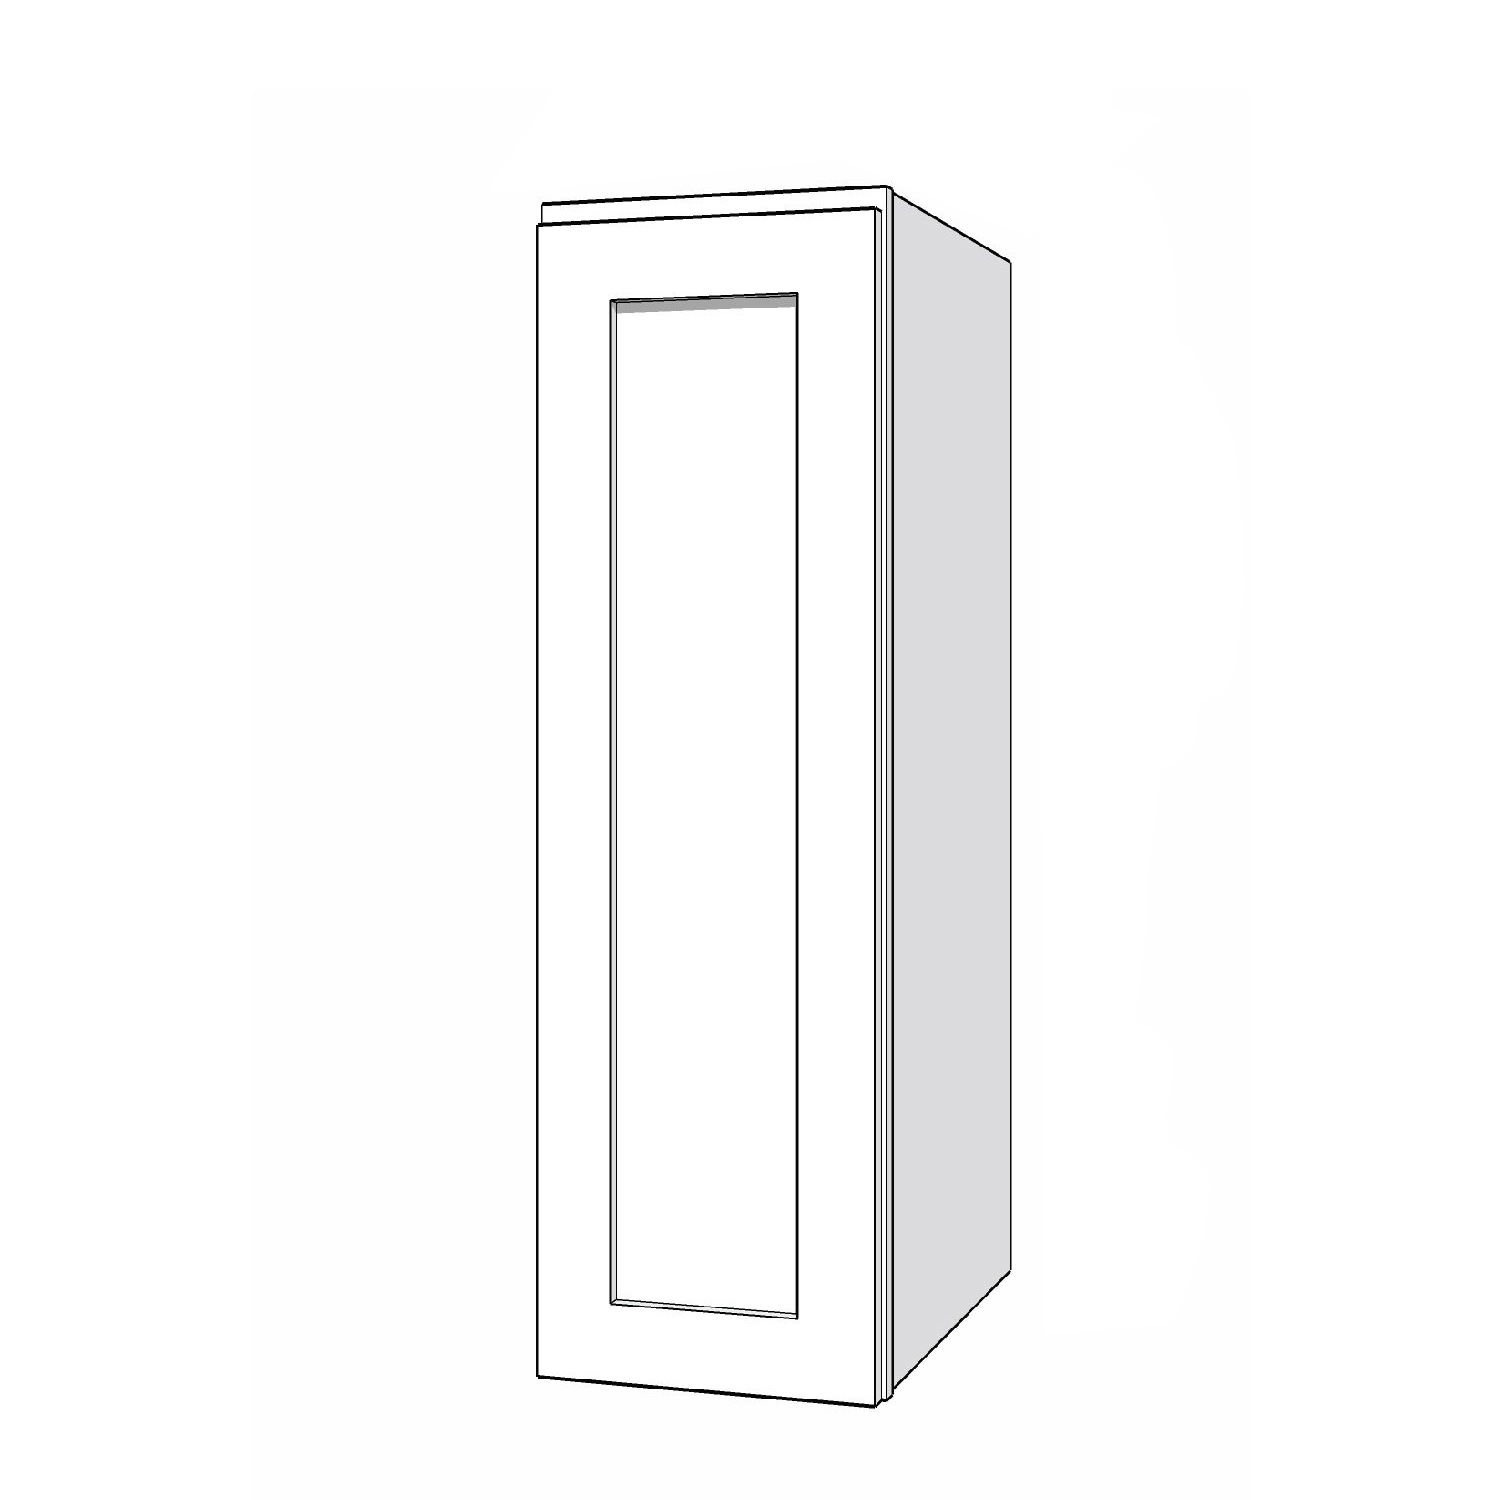 Wall Cabinet - 9in. x 30in. - White